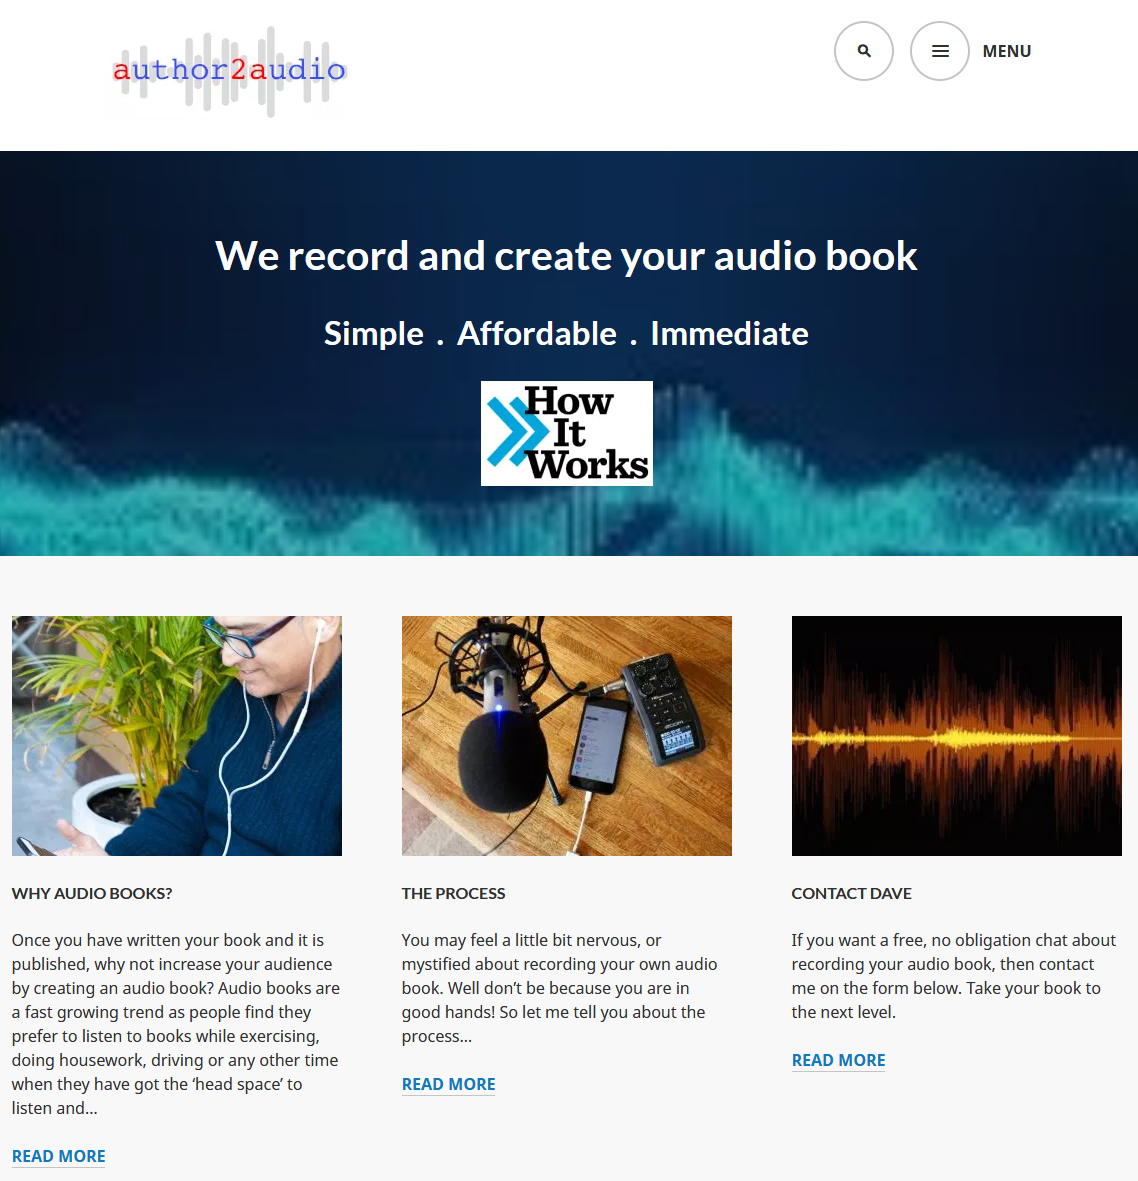 Screenshot_2019-06-02 author2audio.png